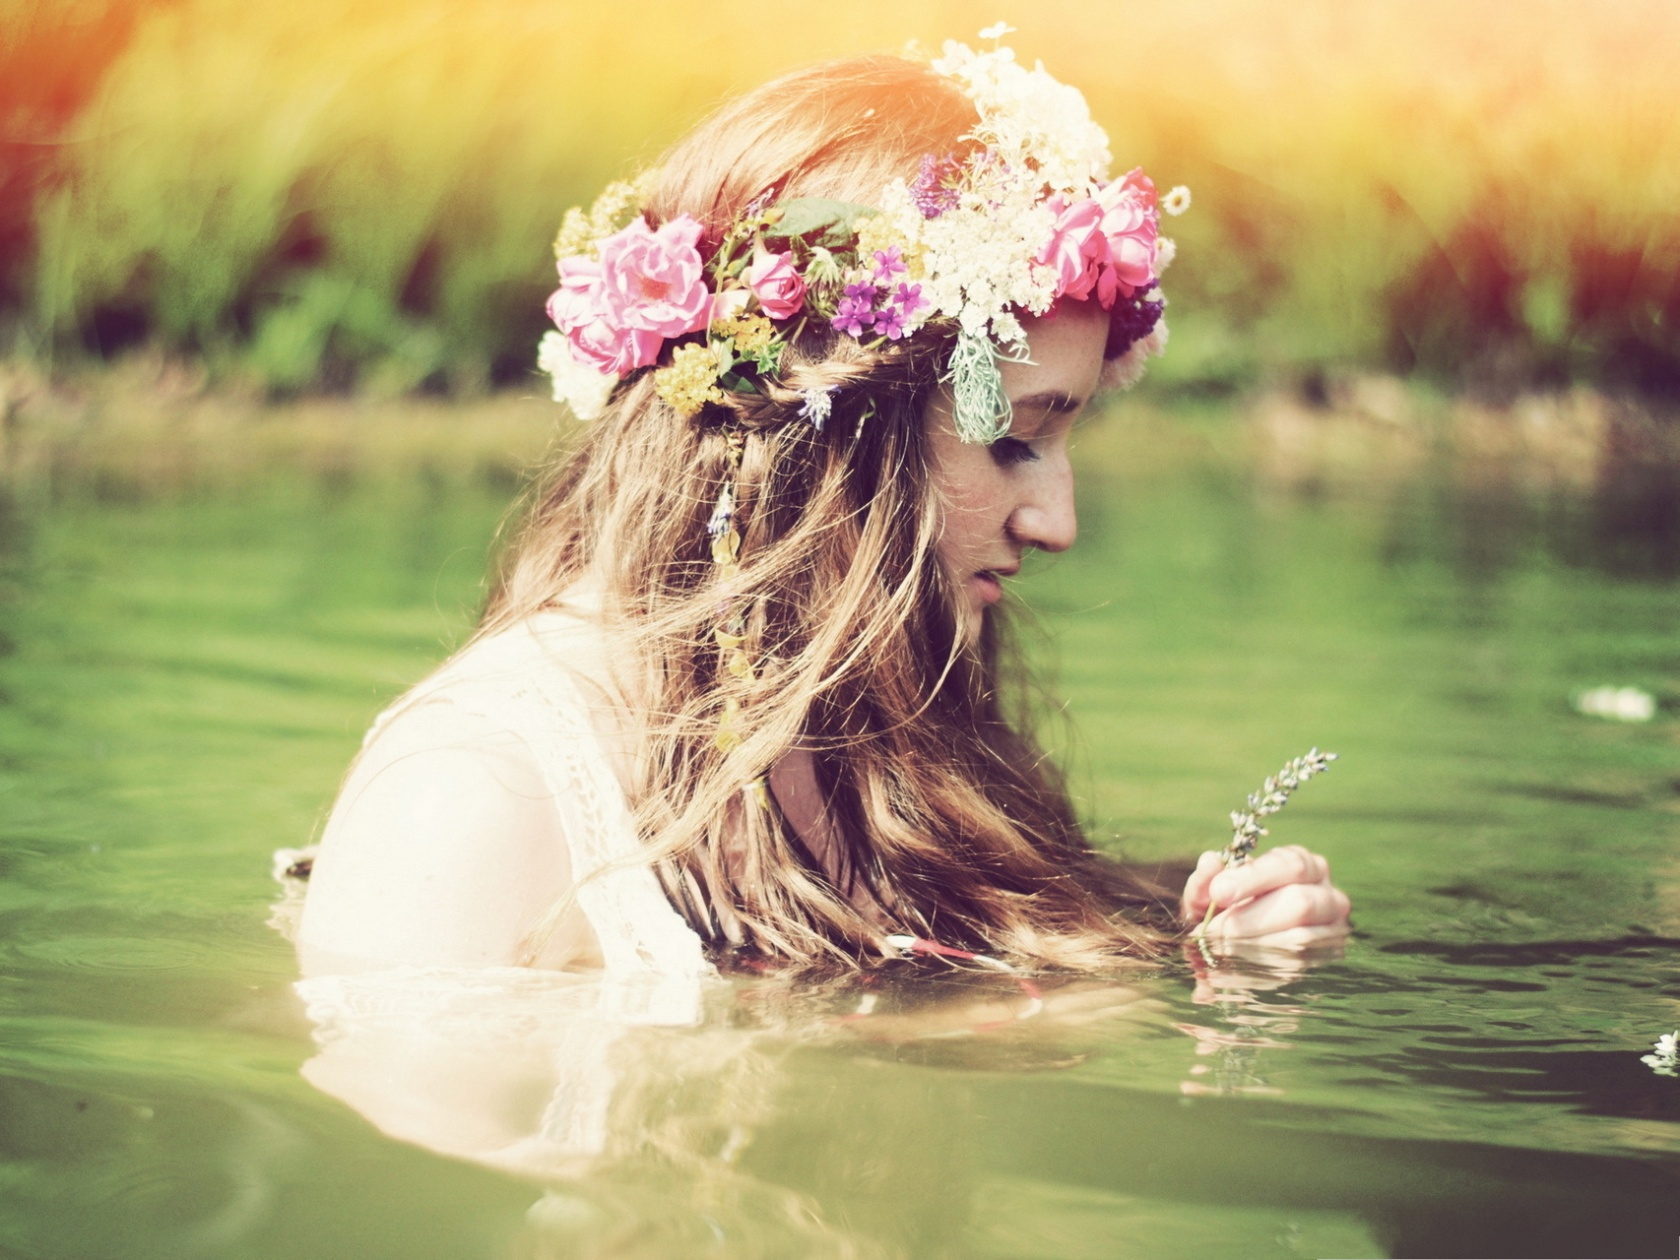 Beautiful Girl Photos, Taking a Bath in the River, Garland on the Head